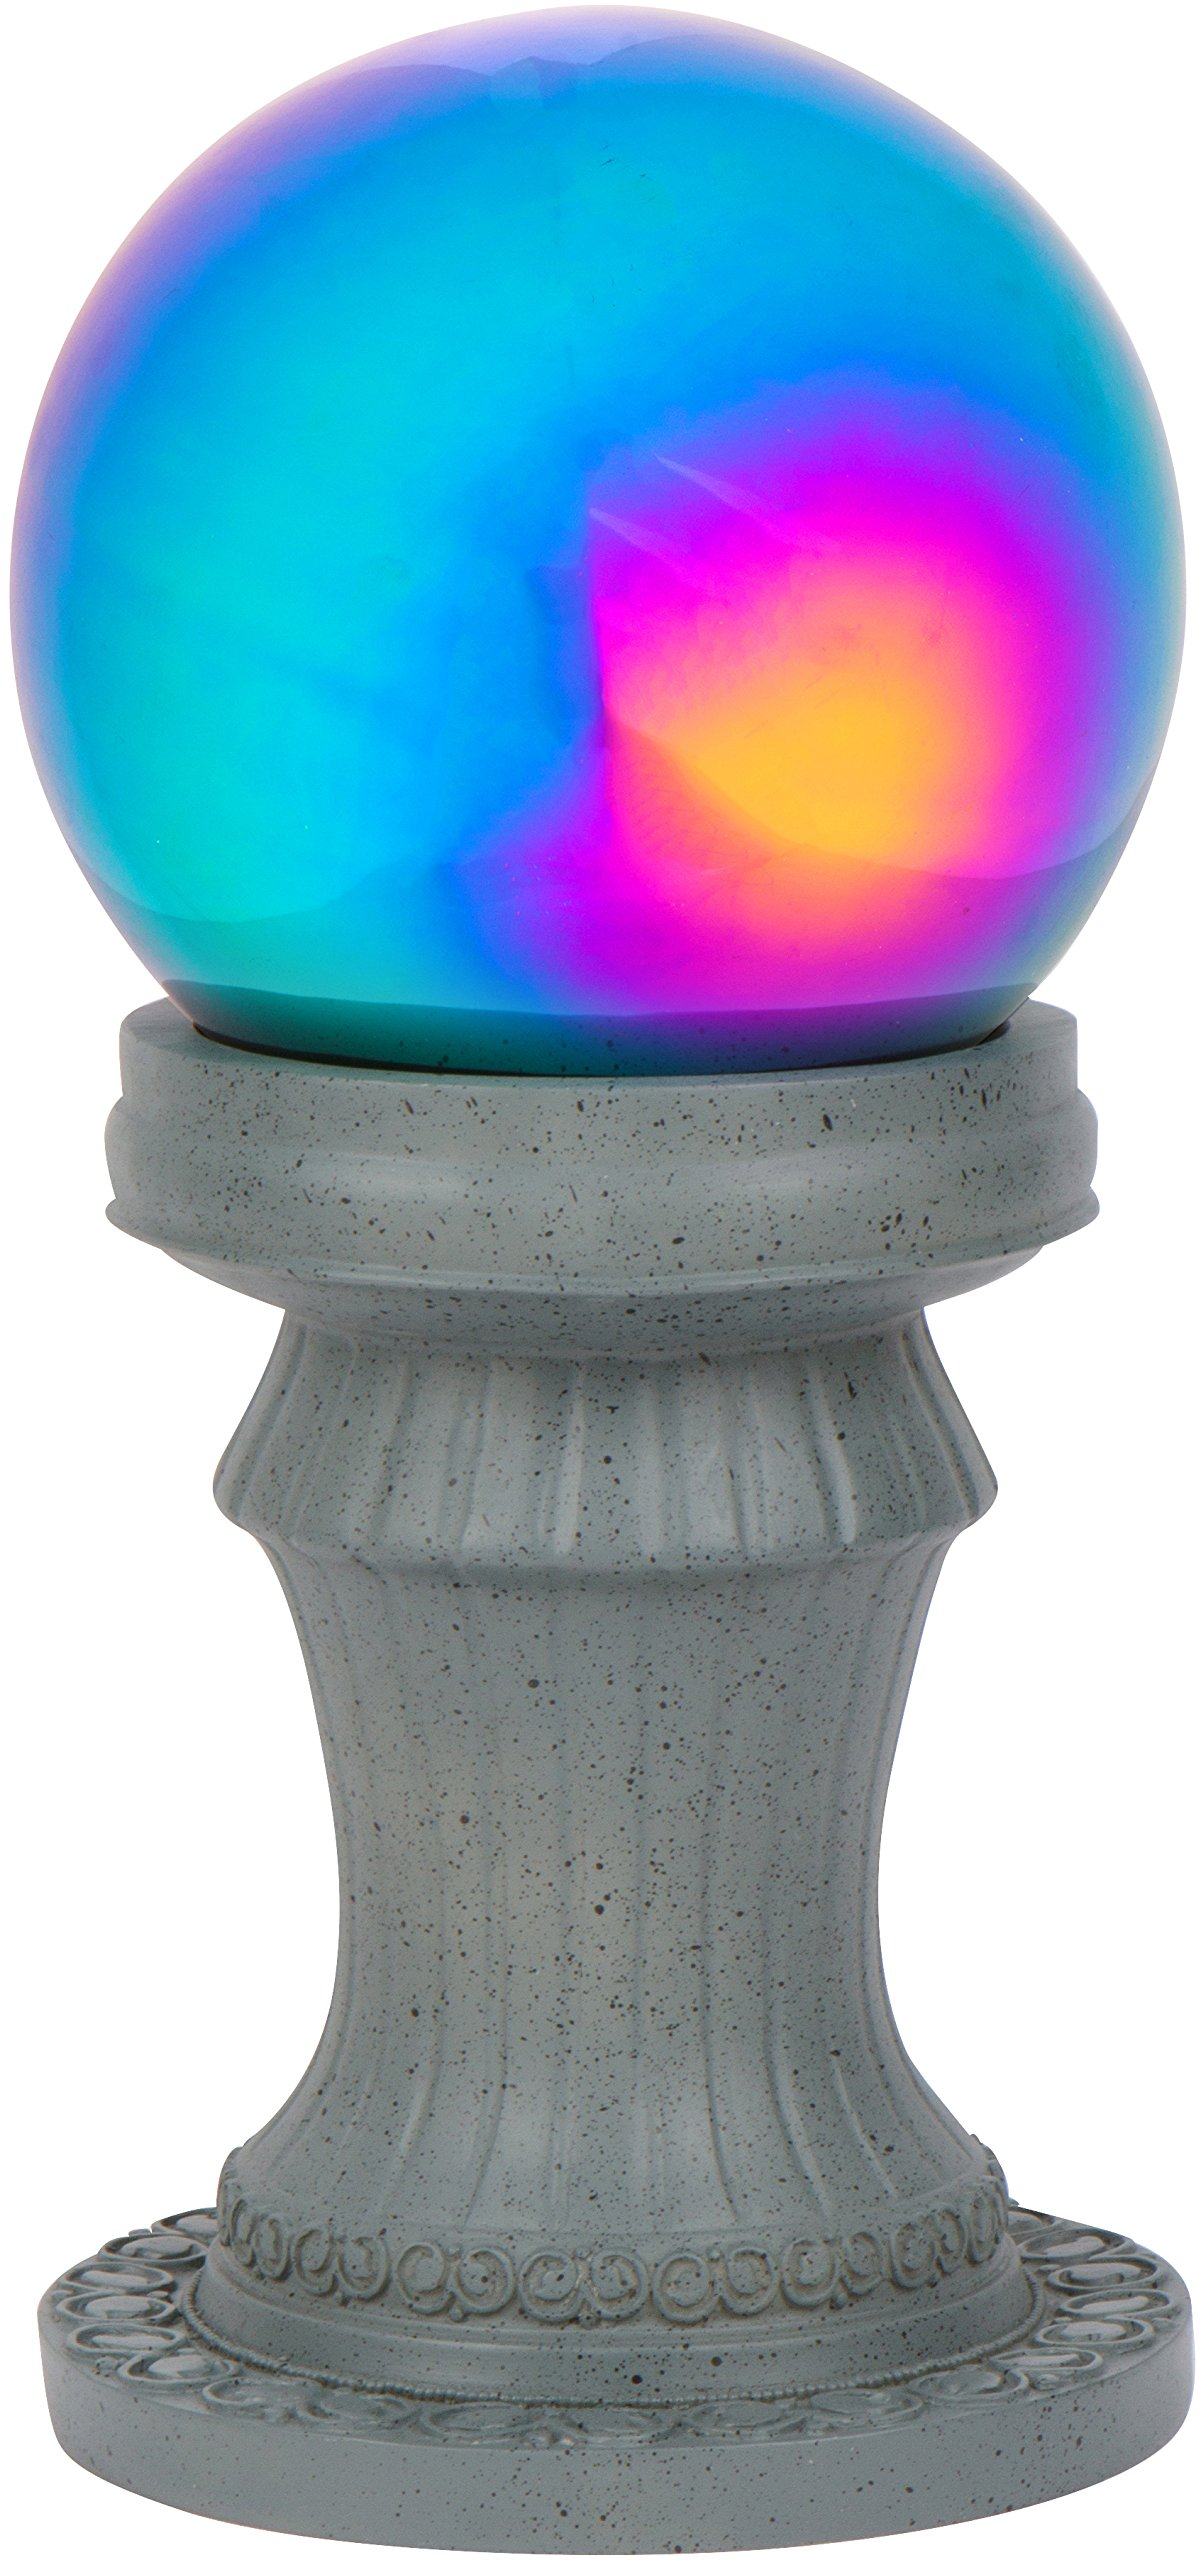 11.5'' Pedestal Gazing Ball Stand (Resin) & 8'' Gazing Ball (Rainbow) by Trademark Innovations